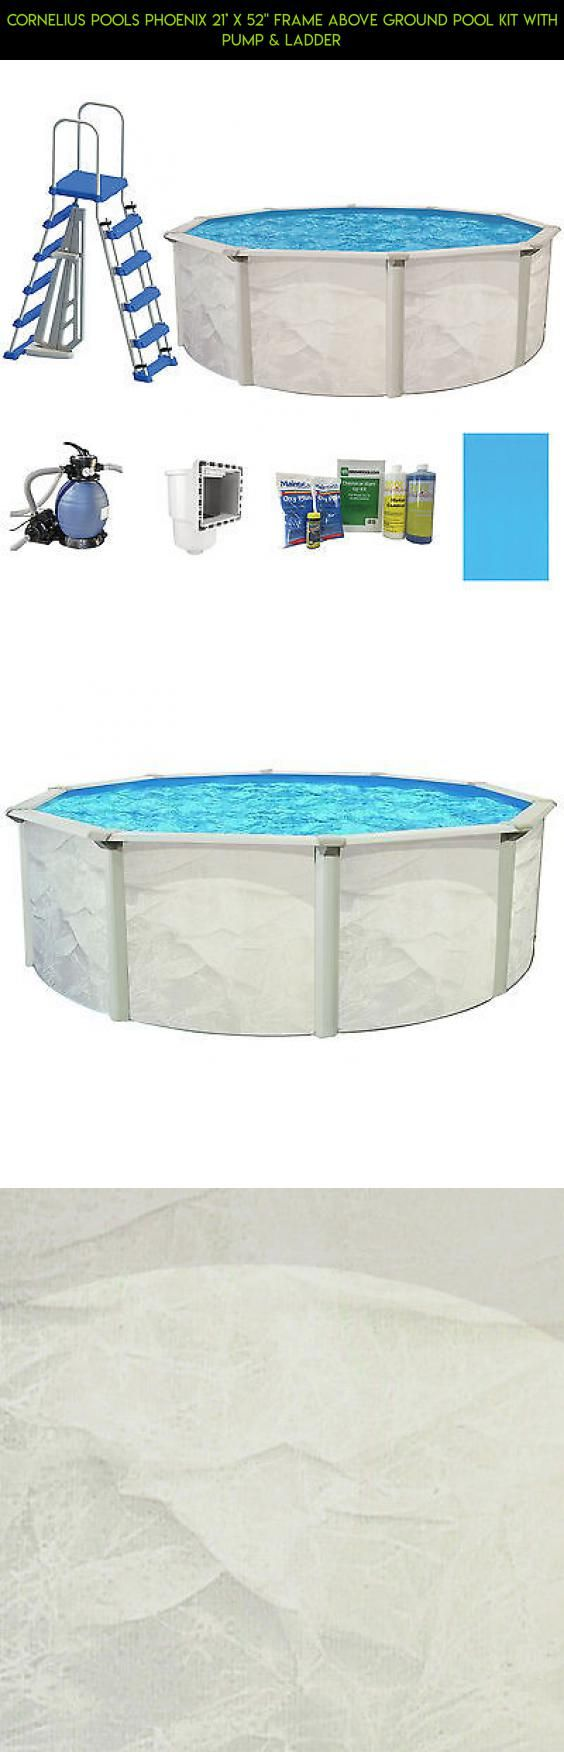 25 Best Ideas About Pool Kits On Pinterest Swimming Pool Kits Swimming Pools And Basketball Kit